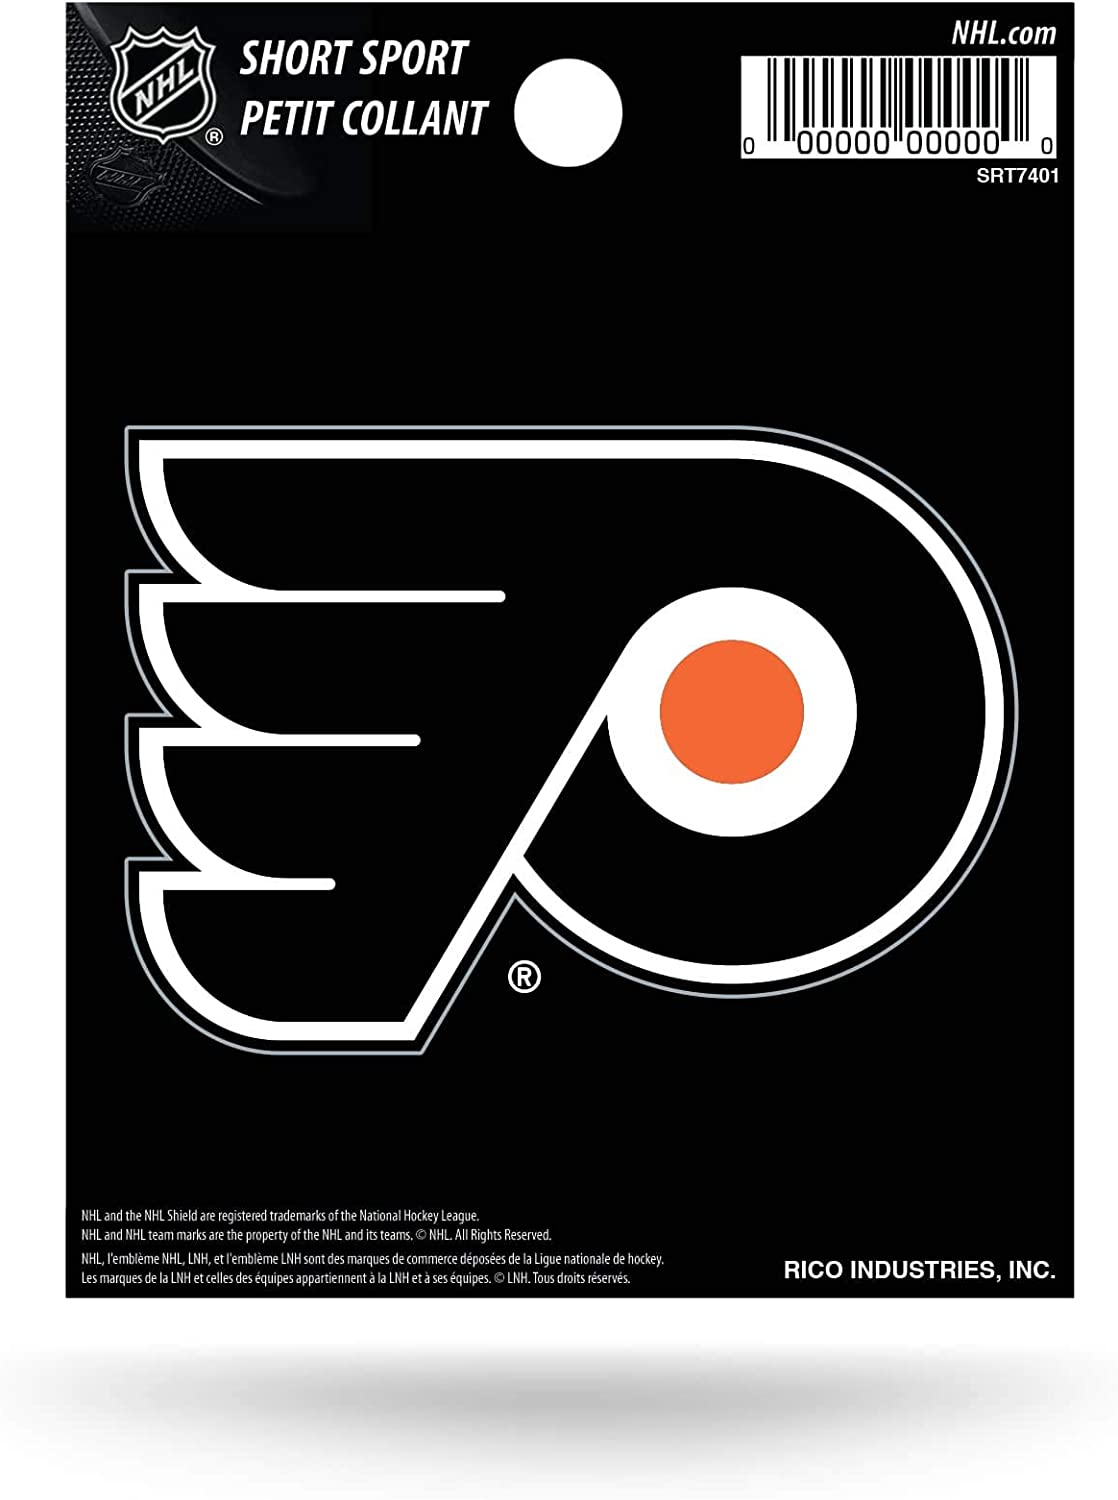 Rico Selling rankings NHL Short Sport Sales of SALE items from new works Decal